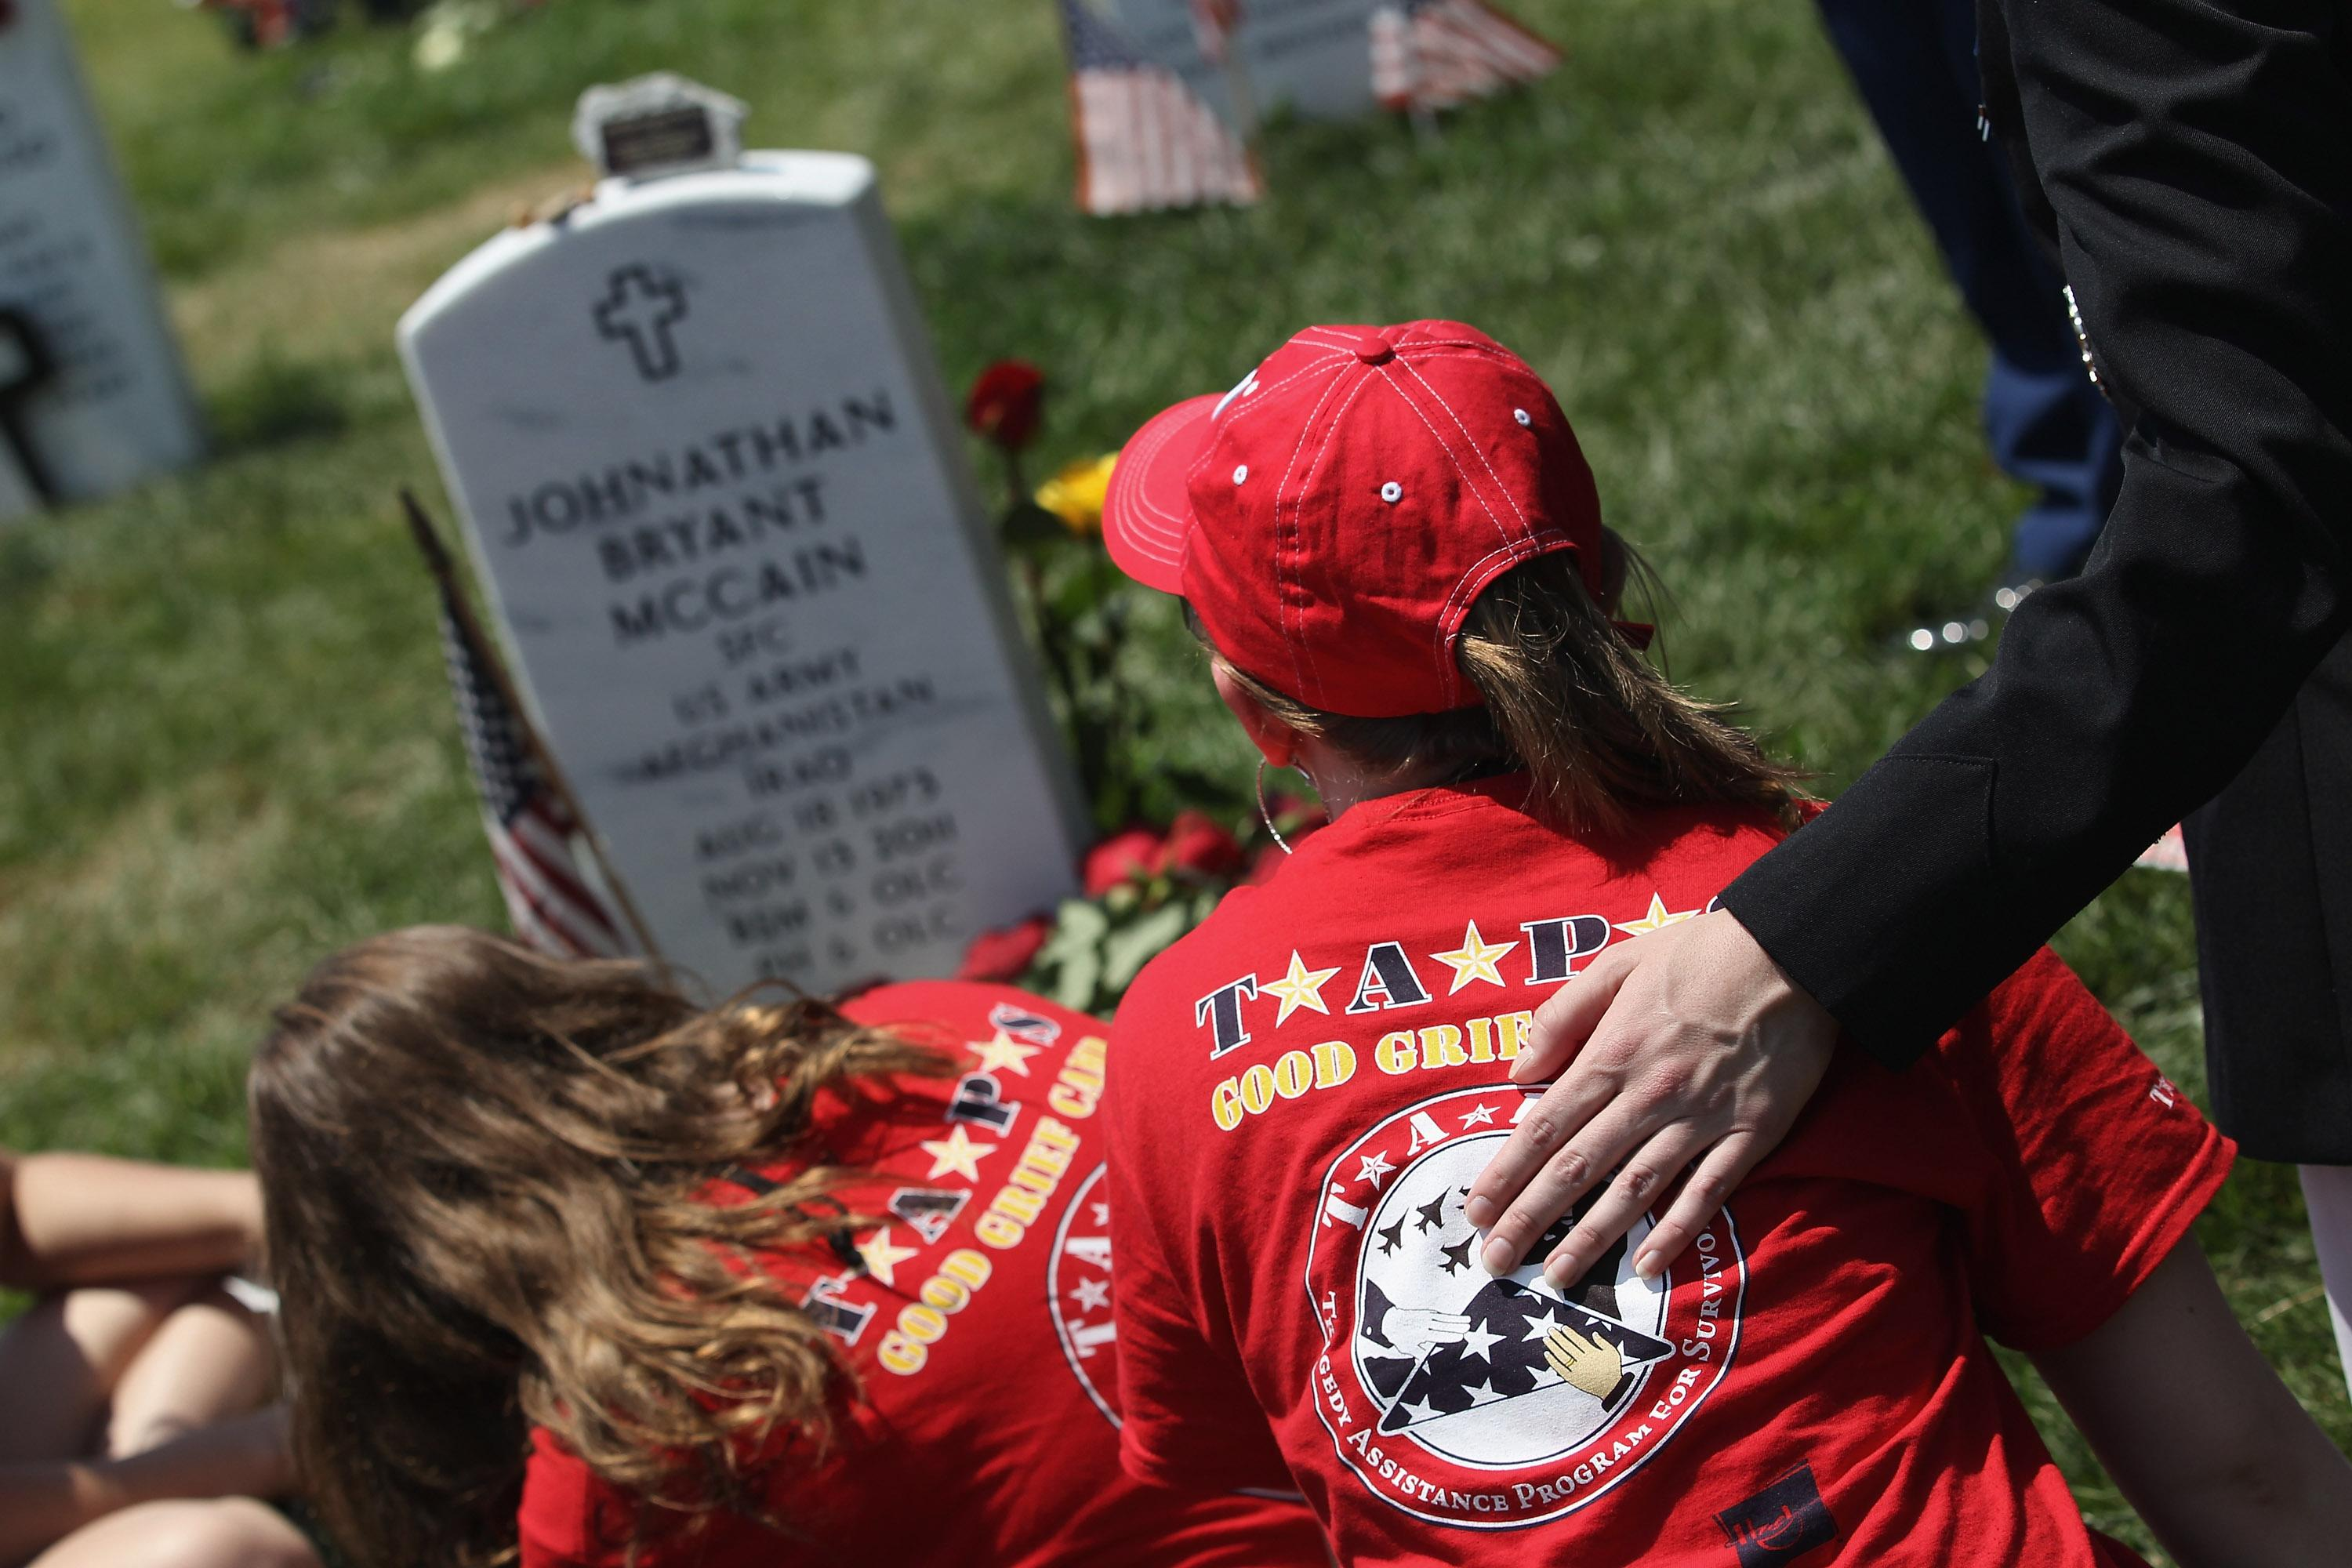 """Breanna McCain, 18, looks upon her father's grave at the National Cemetery on Memorial Day on May 28, 2012 in Arlington, Virginia. Her dad, Army SFC Johnathan McCain, was killed by a roadside bomb in Afghanistan in November 2011. Breanna came with her mother and three sisters to take part in a TAPS """"Good Grief Camp"""". Five hundred military children and teens, many of whom had a parent that was killed in the Afghan and Iraq wars, attended the annual four-day """"Good Grief Camp"""" in Arlington, VA and Washington, DC, which is run by TAPS (Tragedy Assistance Program for Survivors). The camp helped them learn coping skills and build relationships so they know they are not alone in the grief of their loved one. They met others of their own age group, learned together and shared their feelings, both through group activities and one-on-one mentors, who are all active duty or former military servicemembers. Some 1,200 adults, most of whom are grieving parents and spouses, also attend the National Military Survival Seminar held concurrently with the children's camp. The TAPS slogan is """"Remember the Love. Celebrate the Life. Share the Journey."""" (Photo by John Moore/Getty Images)"""